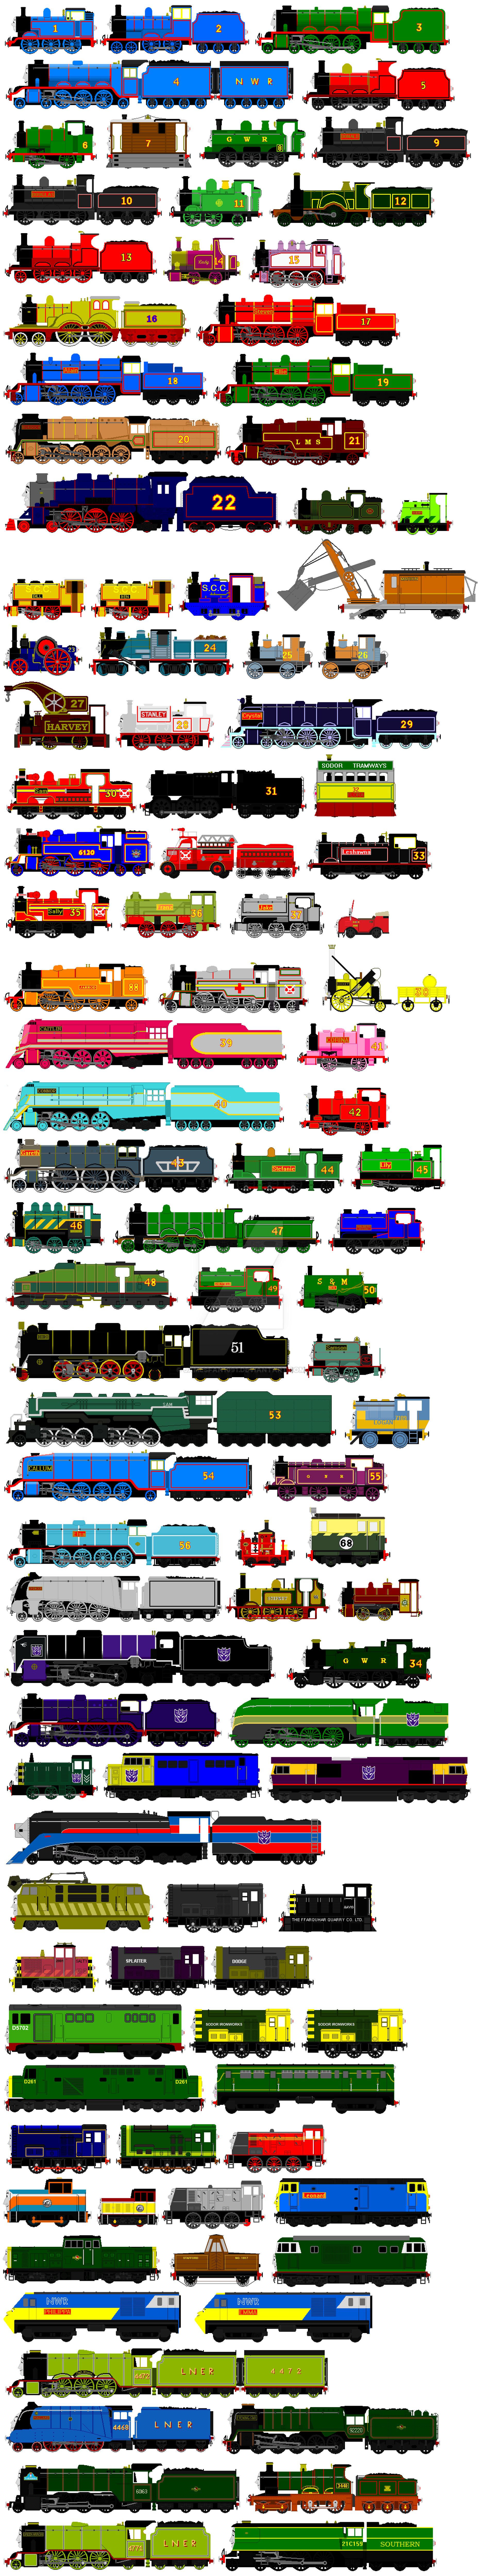 Thomas And Friends Animated Characters 15 By Jamesfan1991 On Deviantart